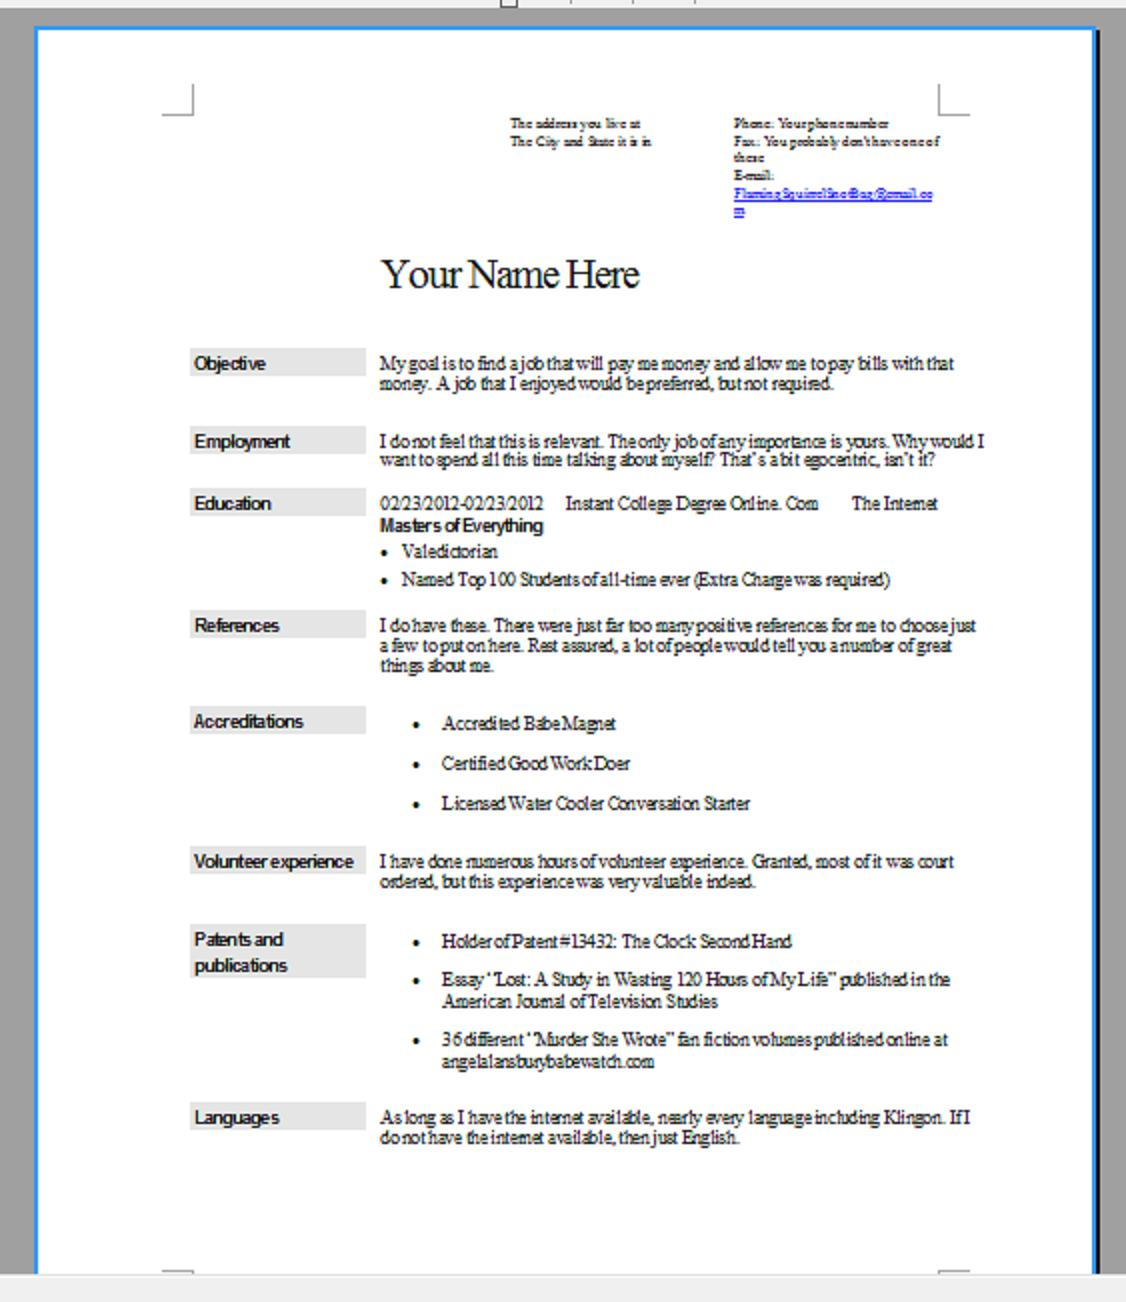 I Need A Resume For A Job,What You Need For A Resume Free Resume ...